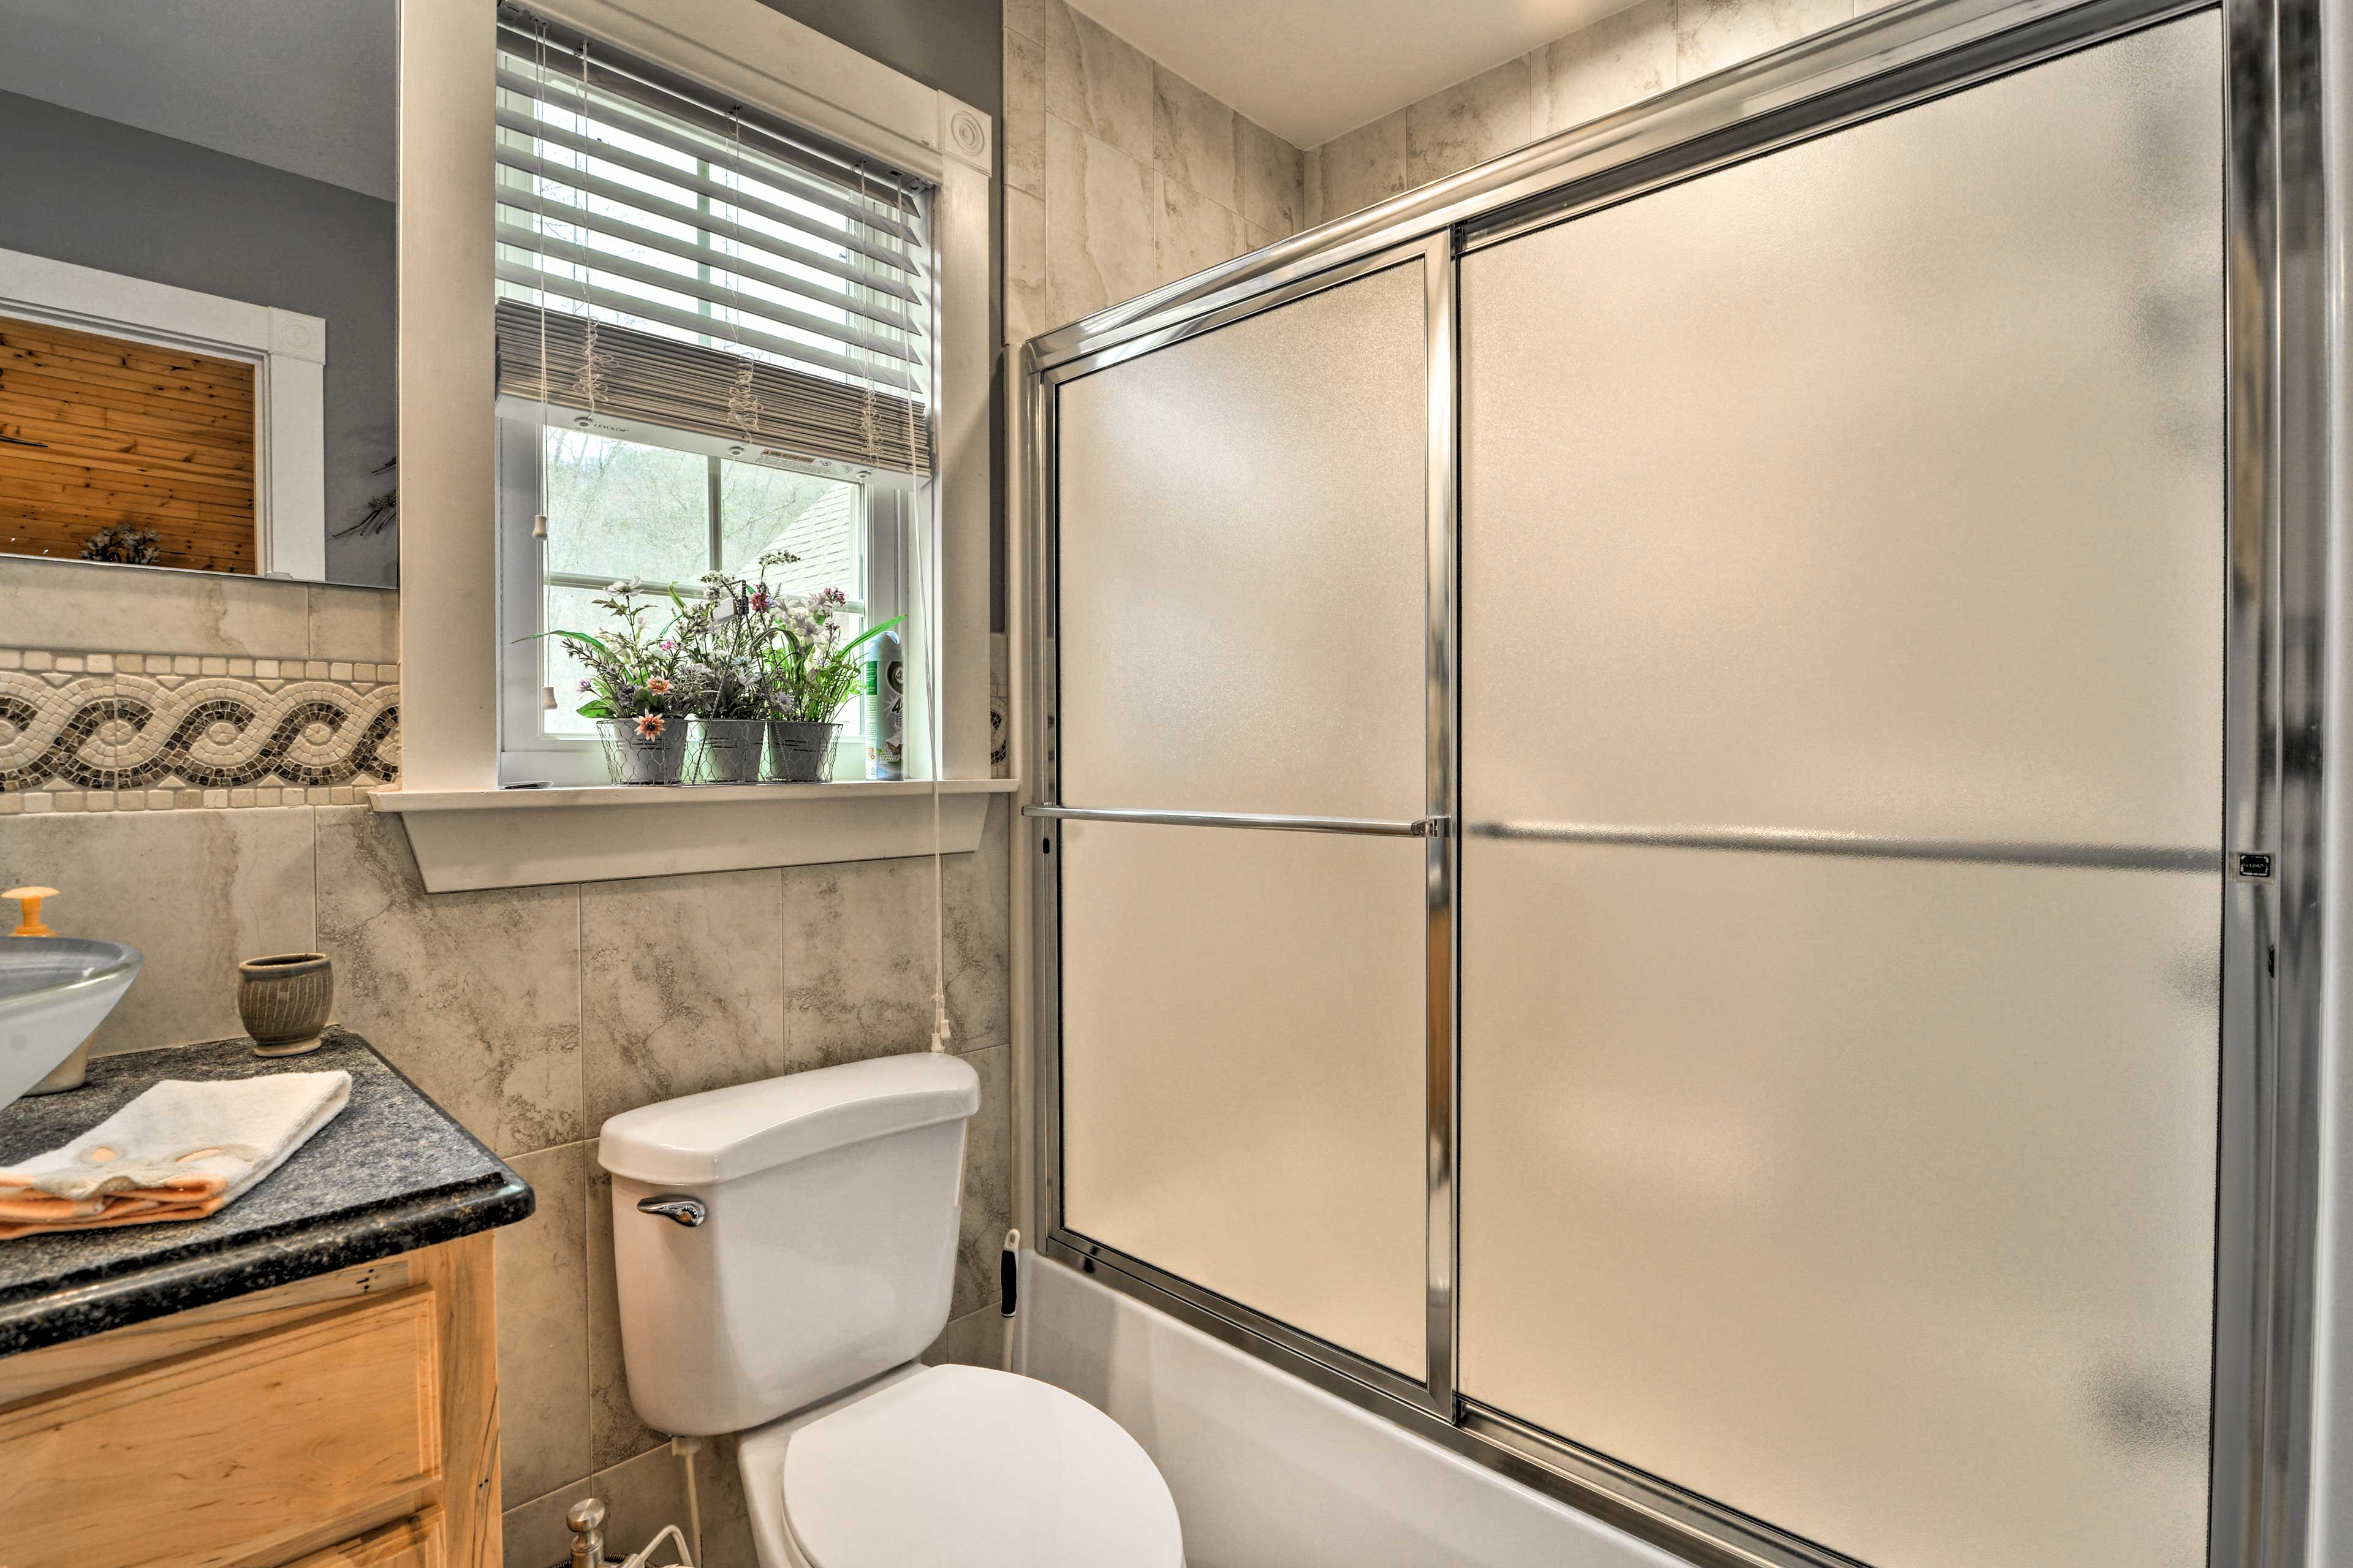 The second bathroom has a shower/tub combo.